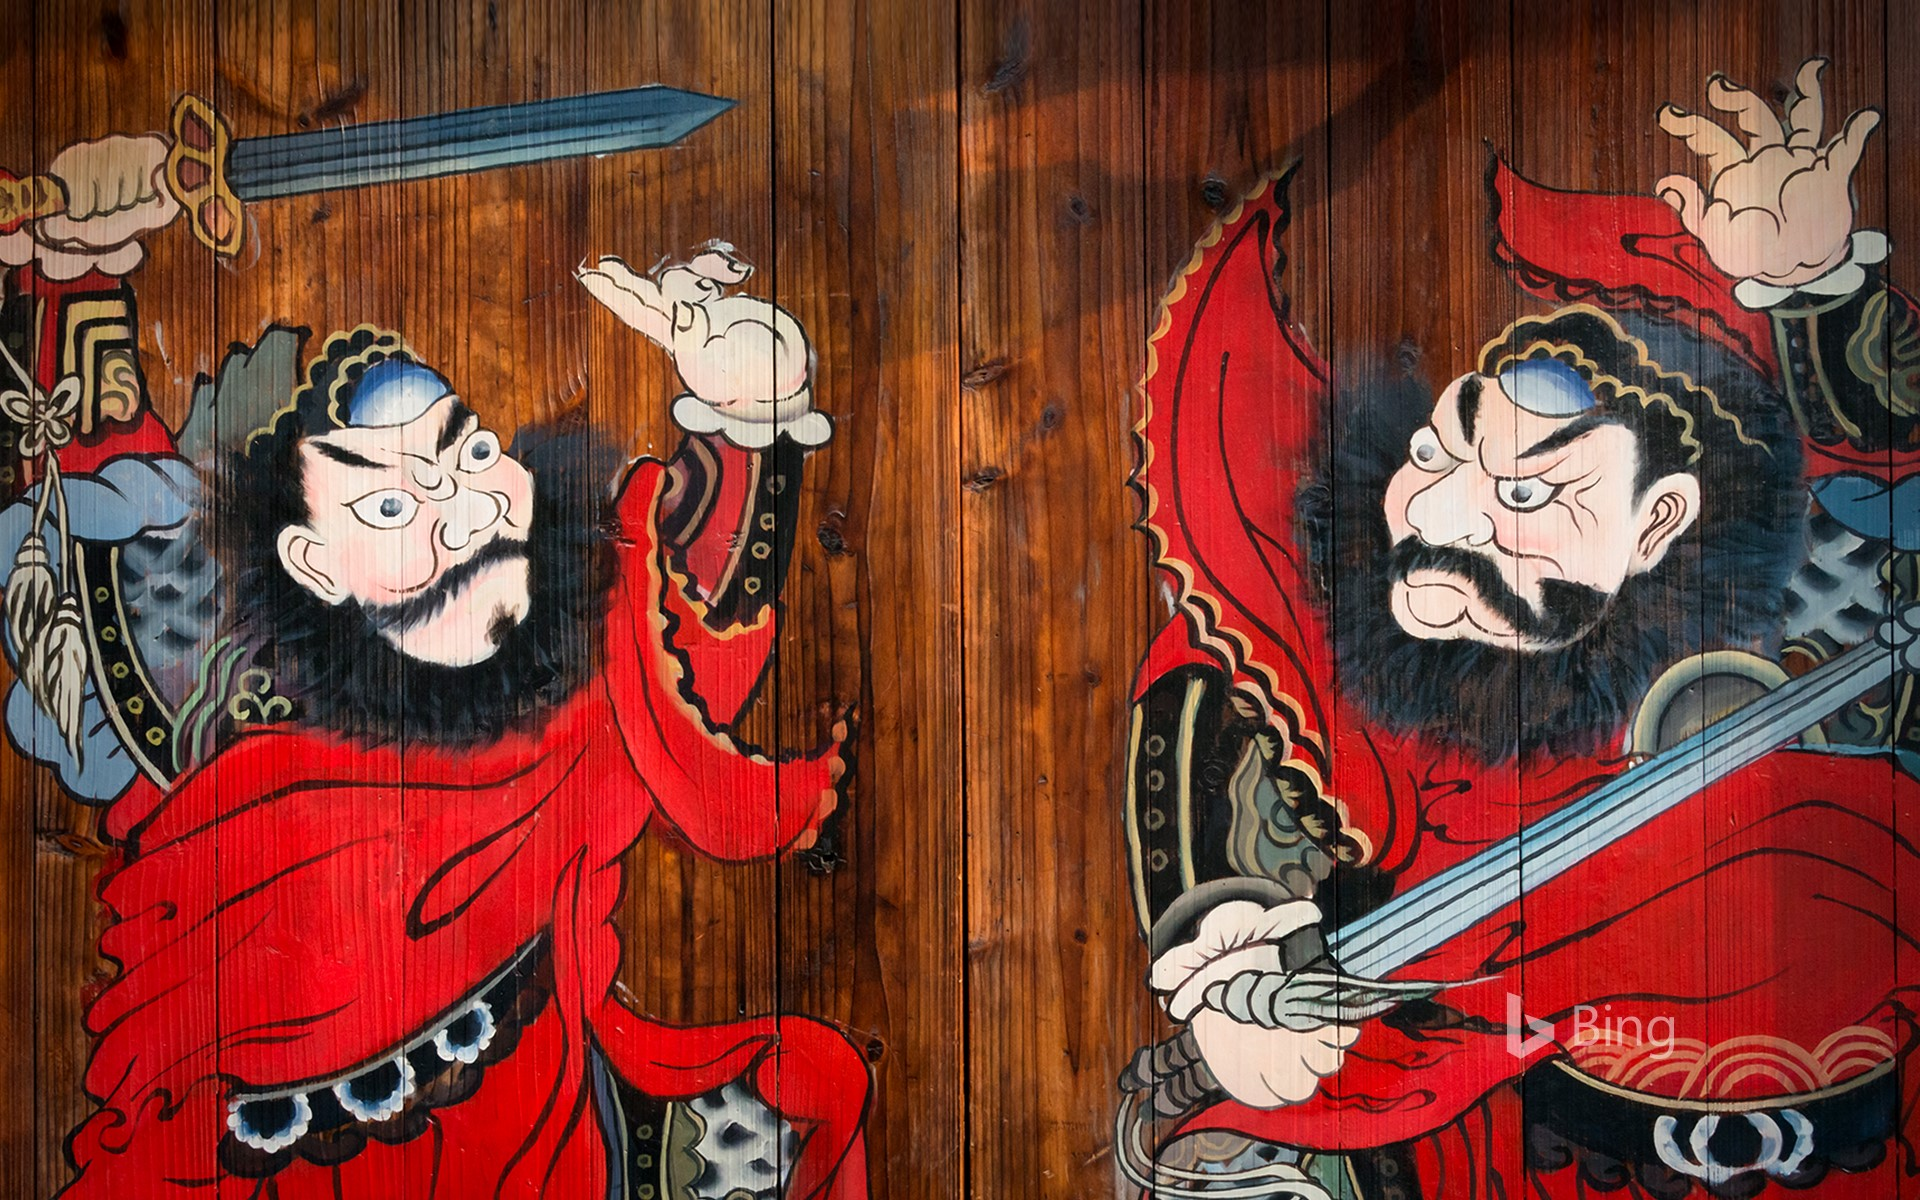 The door god painted in front of a house in Yuehe Ancient Town, Zhejiang